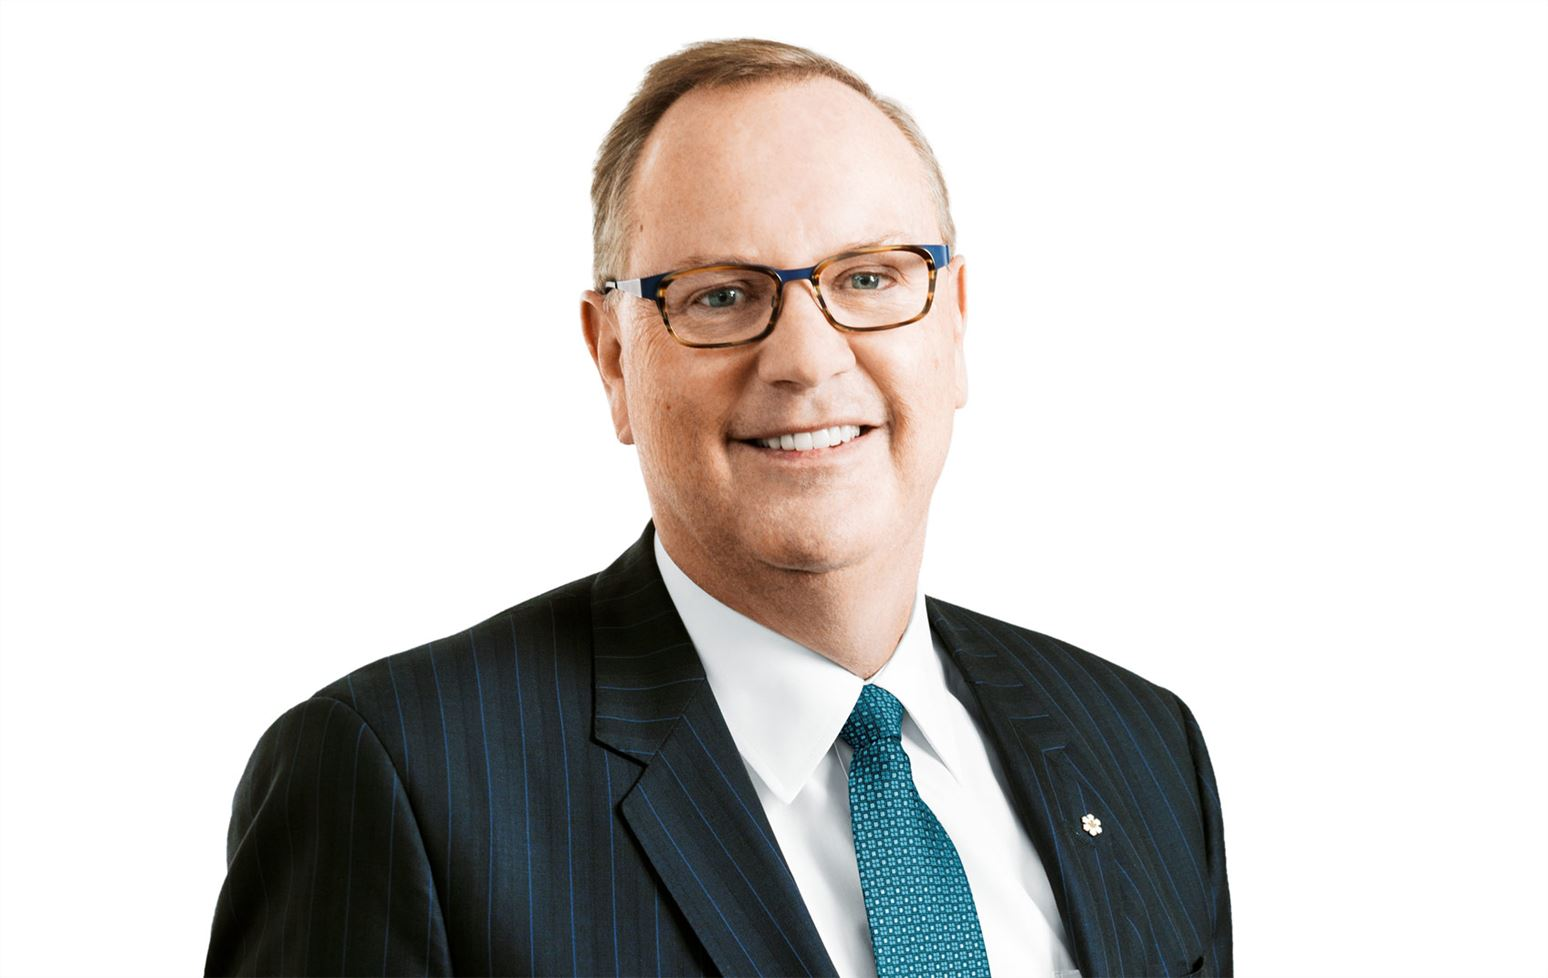 #BellLetsTalk: Q&A with George Cope, HBA '84